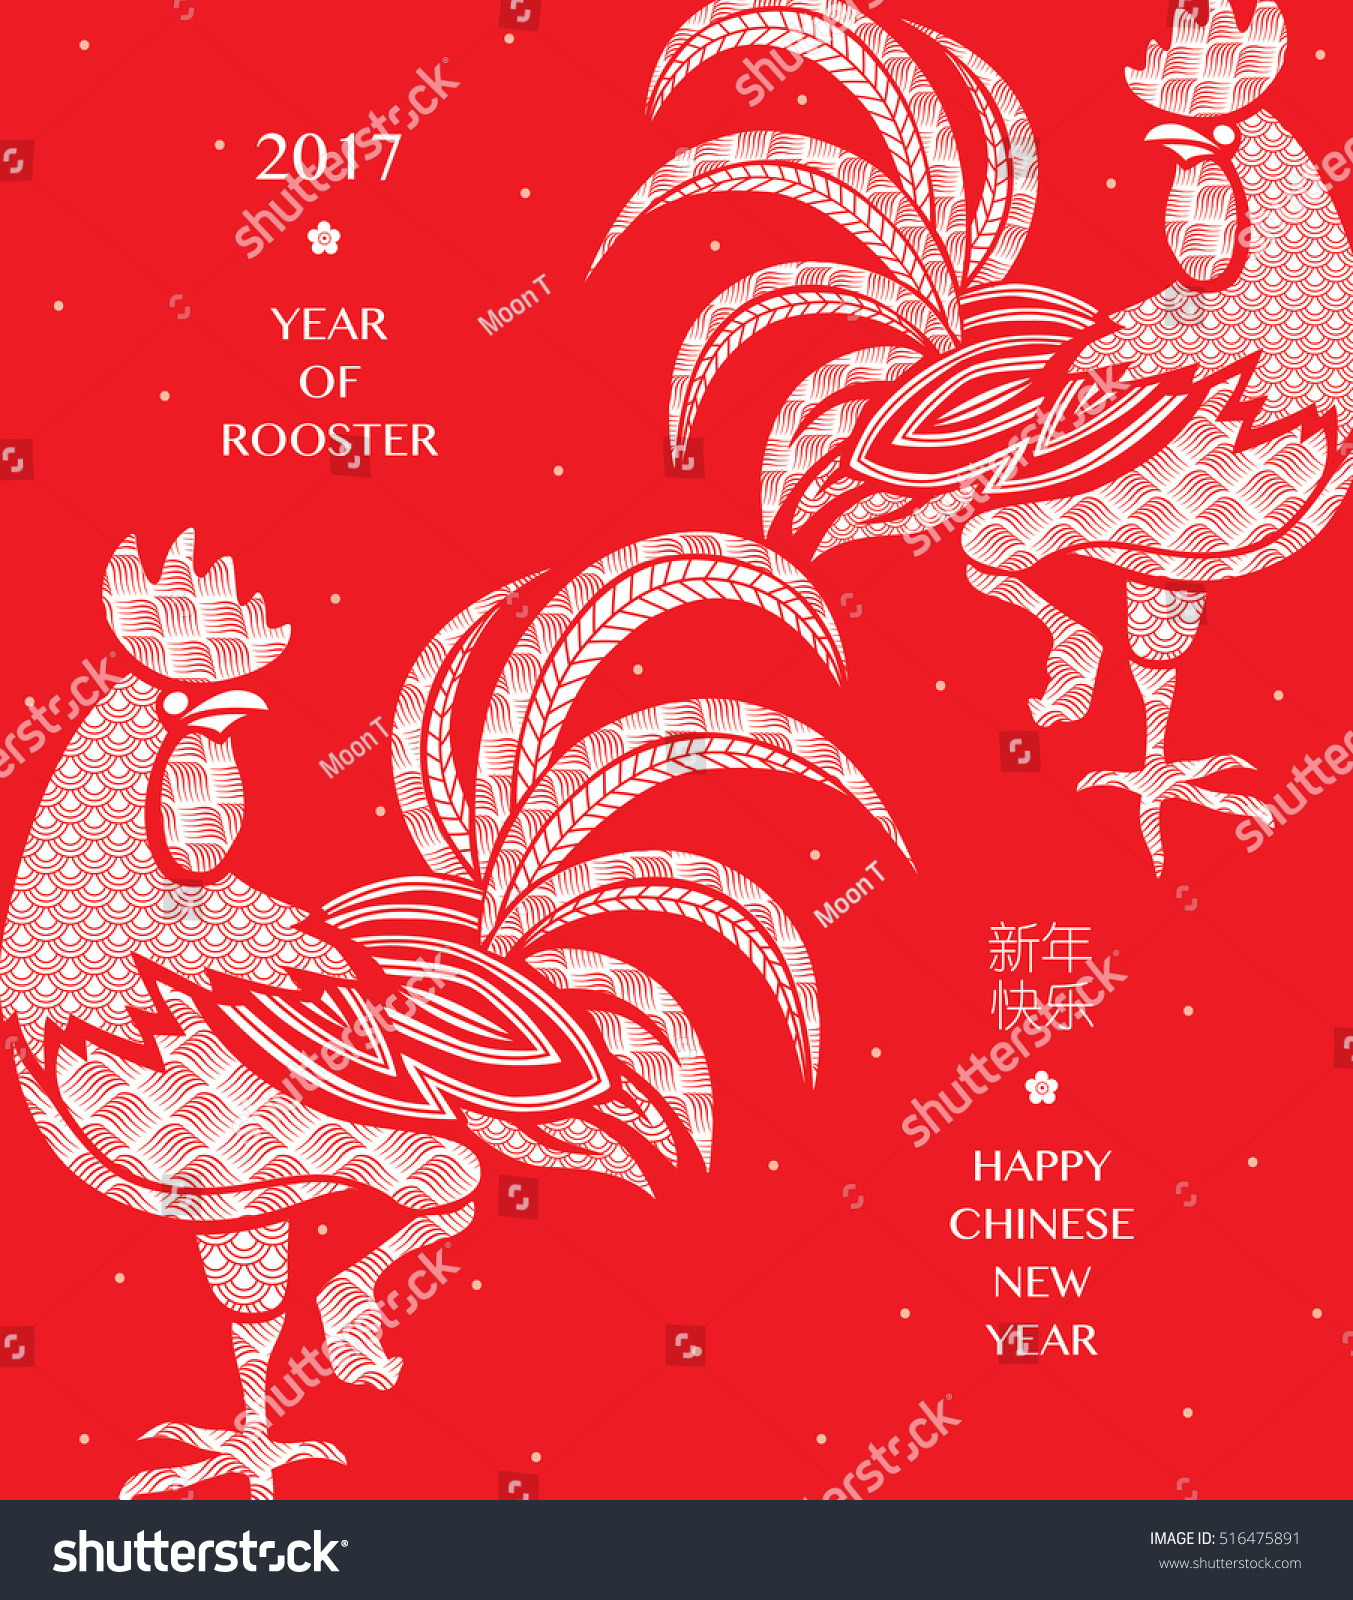 Chinese New Year 2017 Rooster Year Stock Vector 516475891 ...